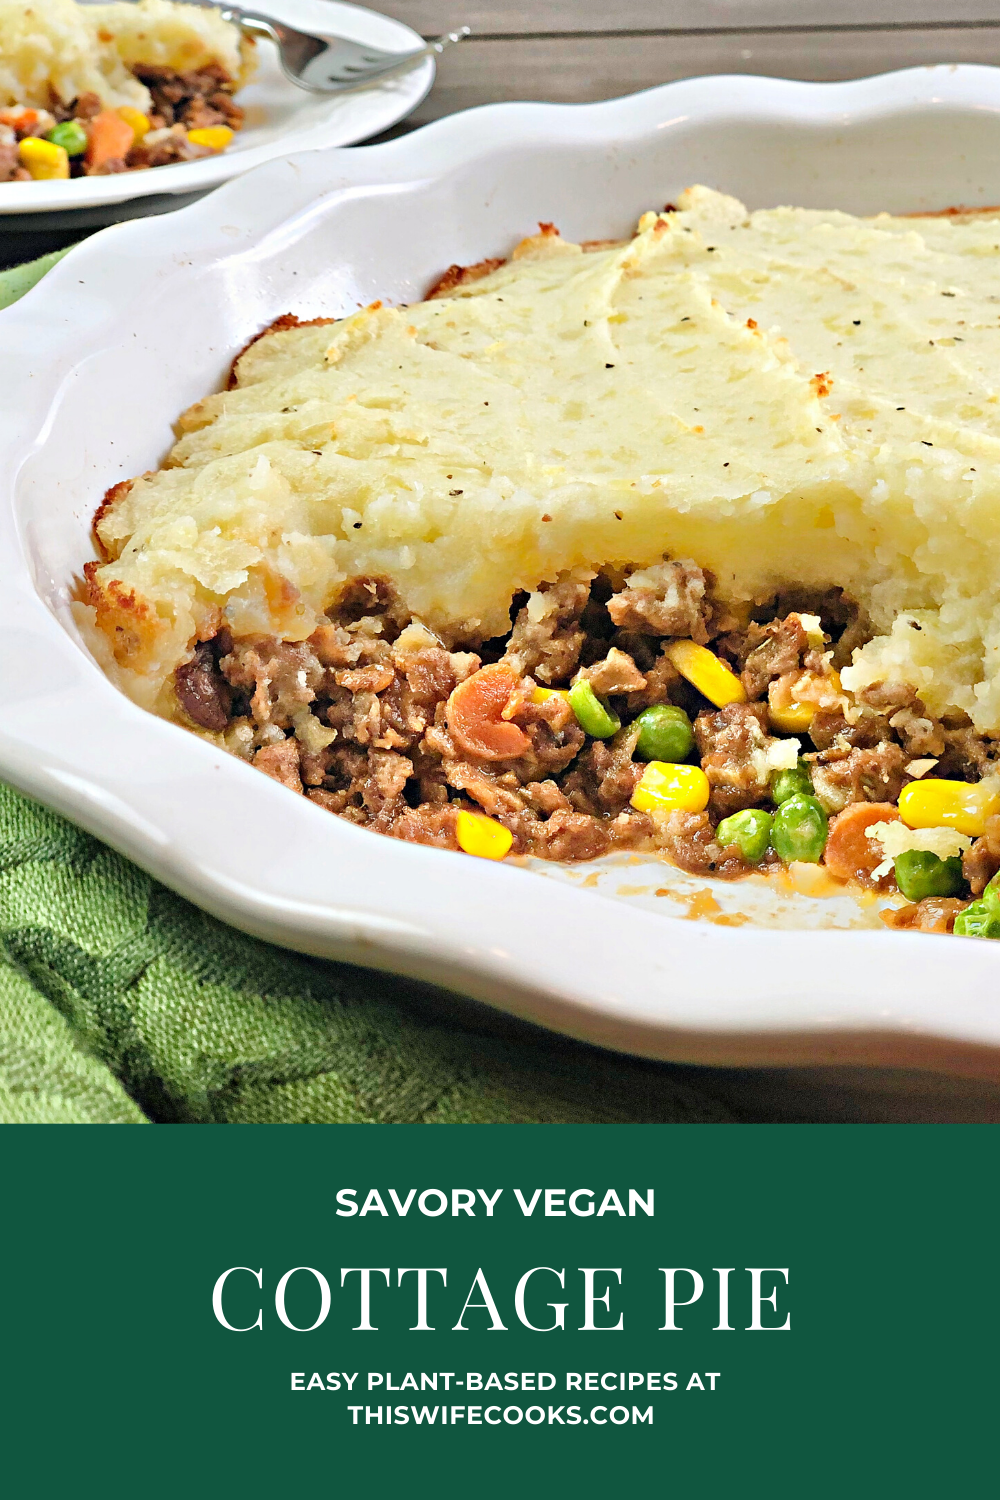 Vegan Cottage Pie - This plant-based version of a classic cottage pie is pure comfort food! via @thiswifecooks